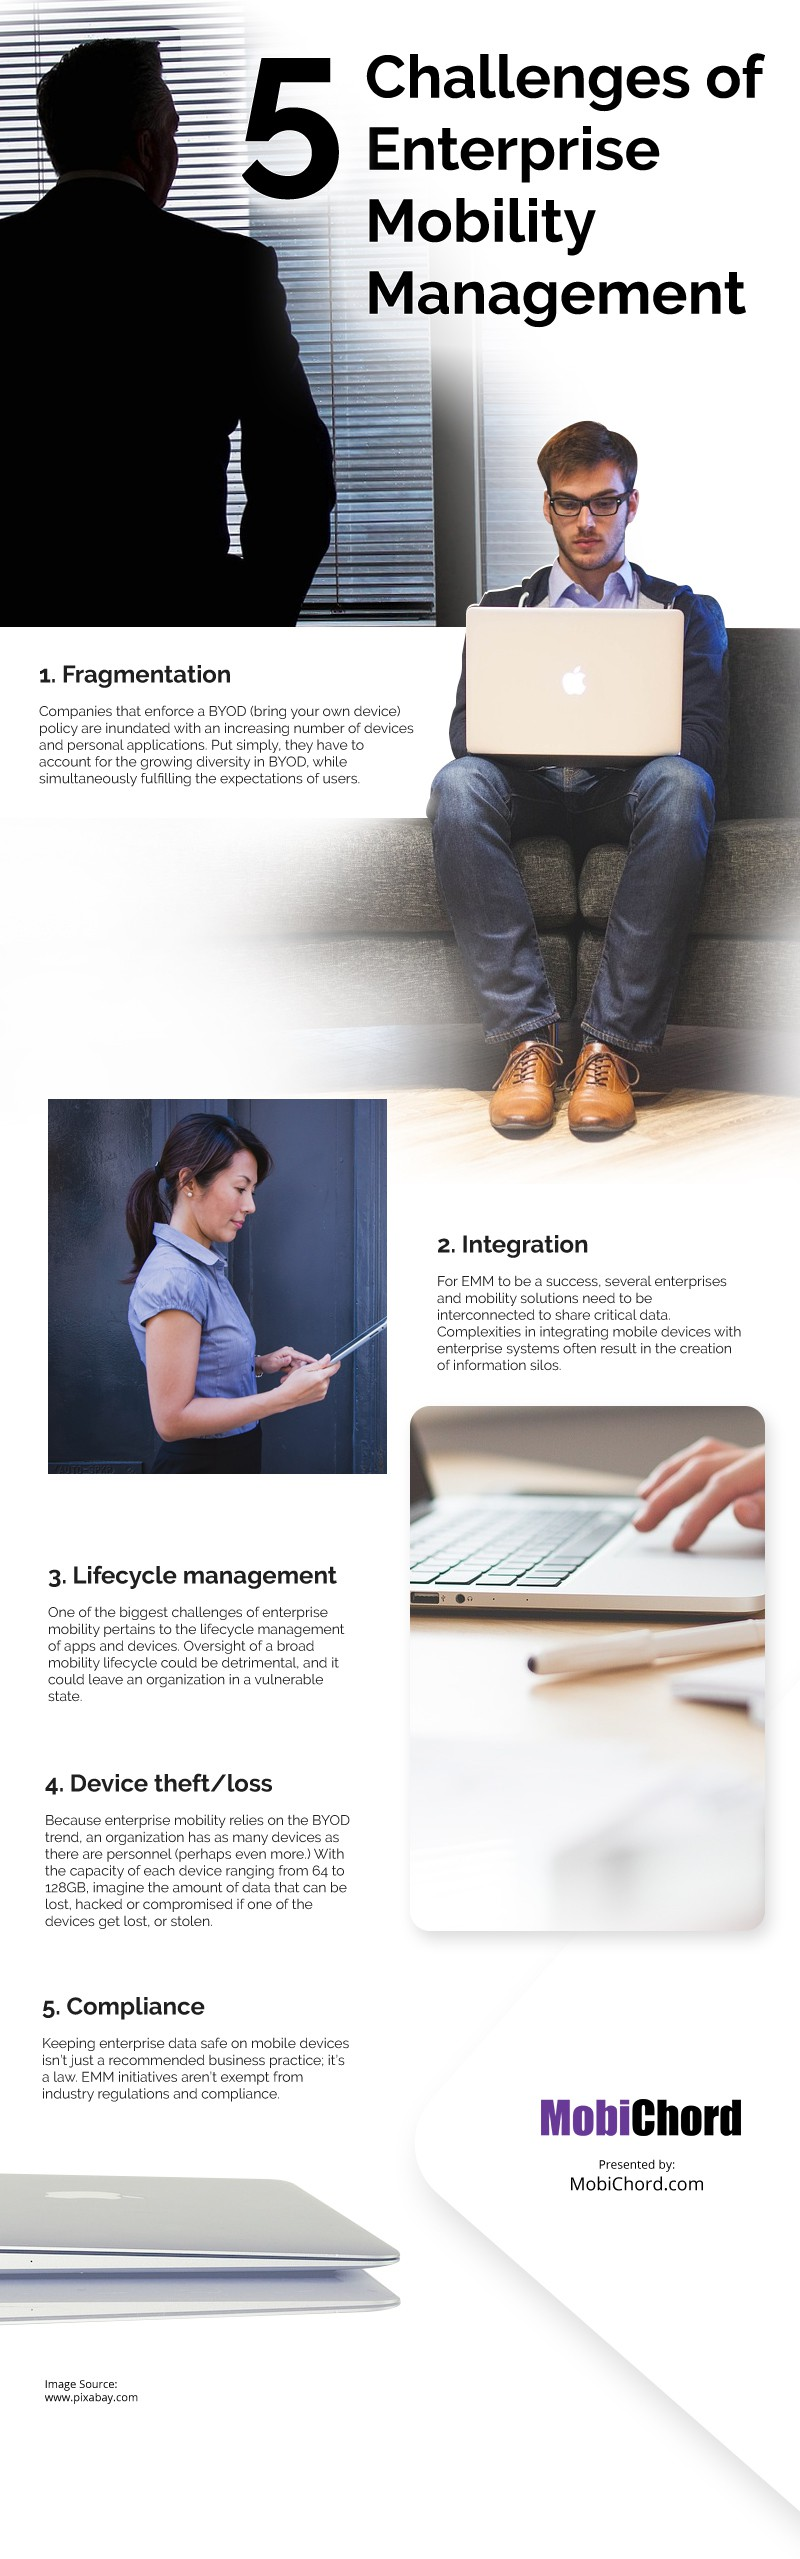 5 Challenges of Enterprise Mobility Management